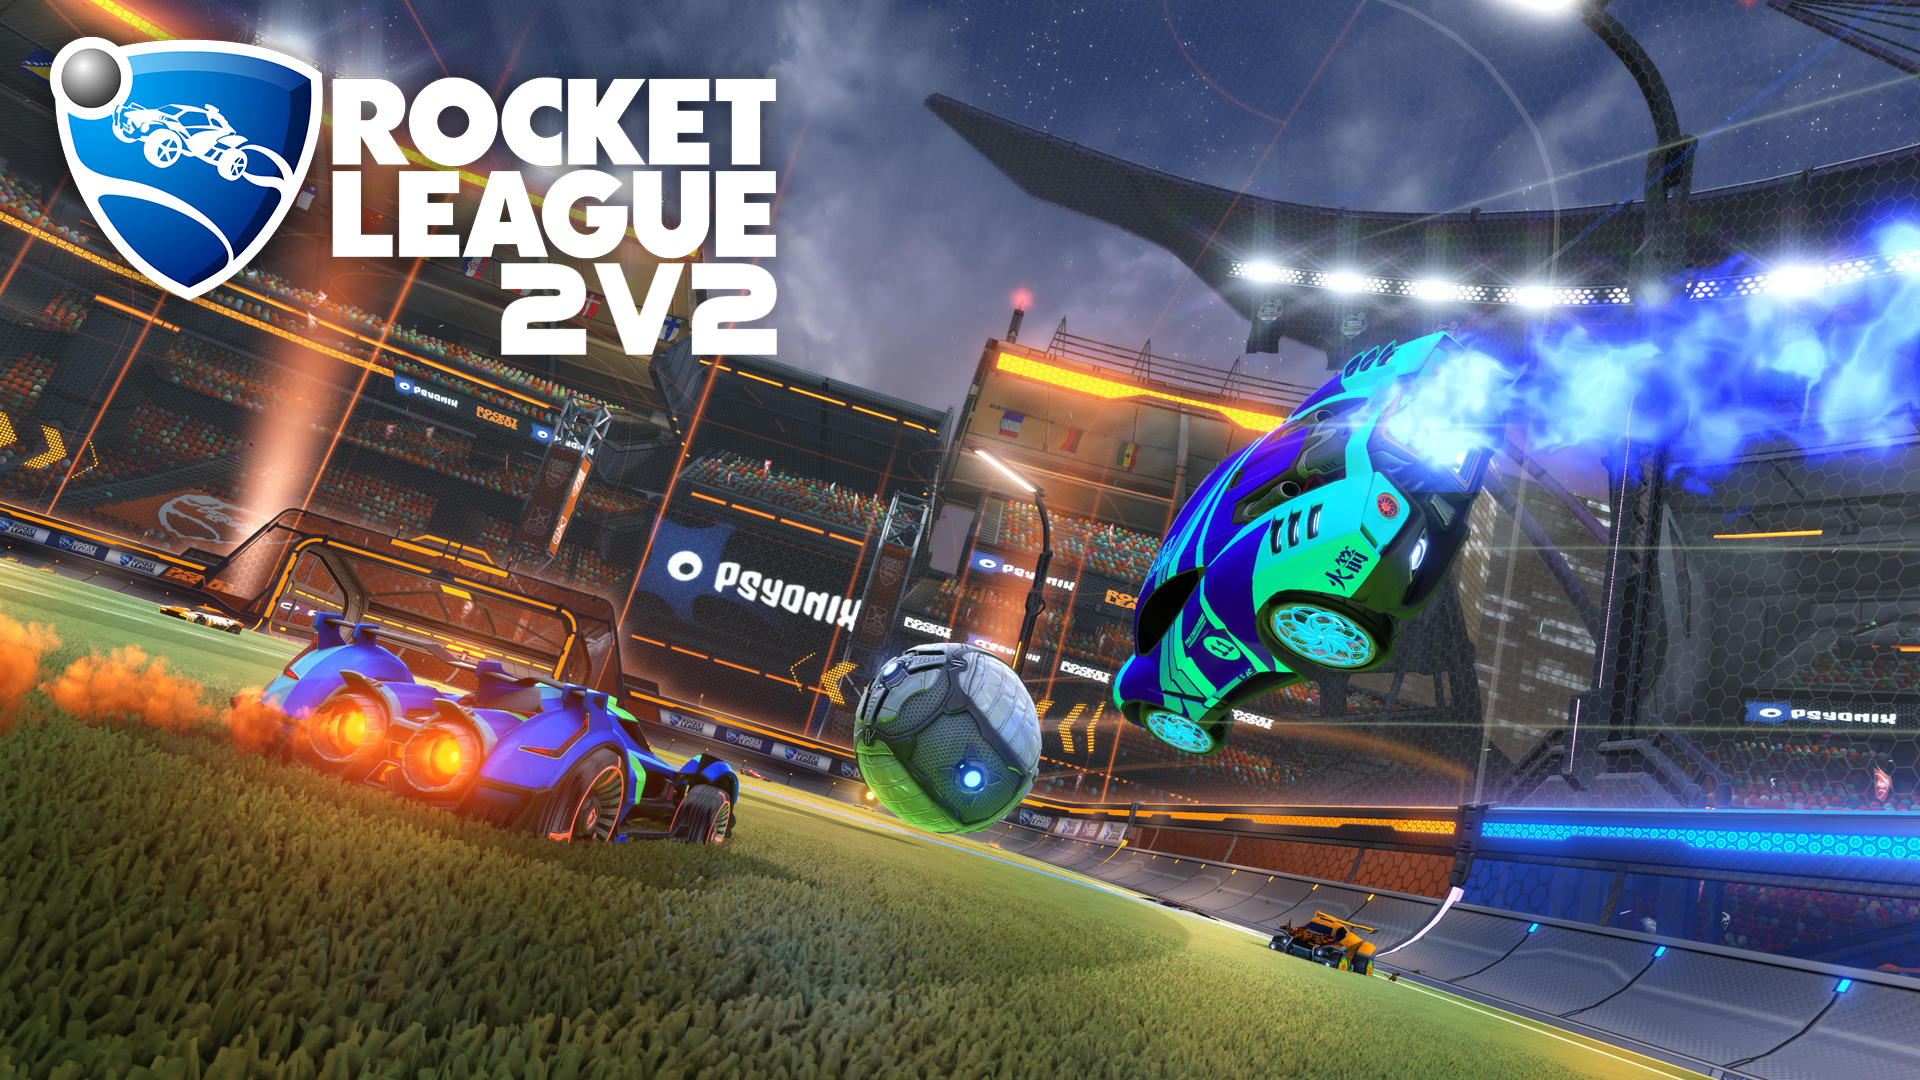 13.30 - Start Rocket League 2v2